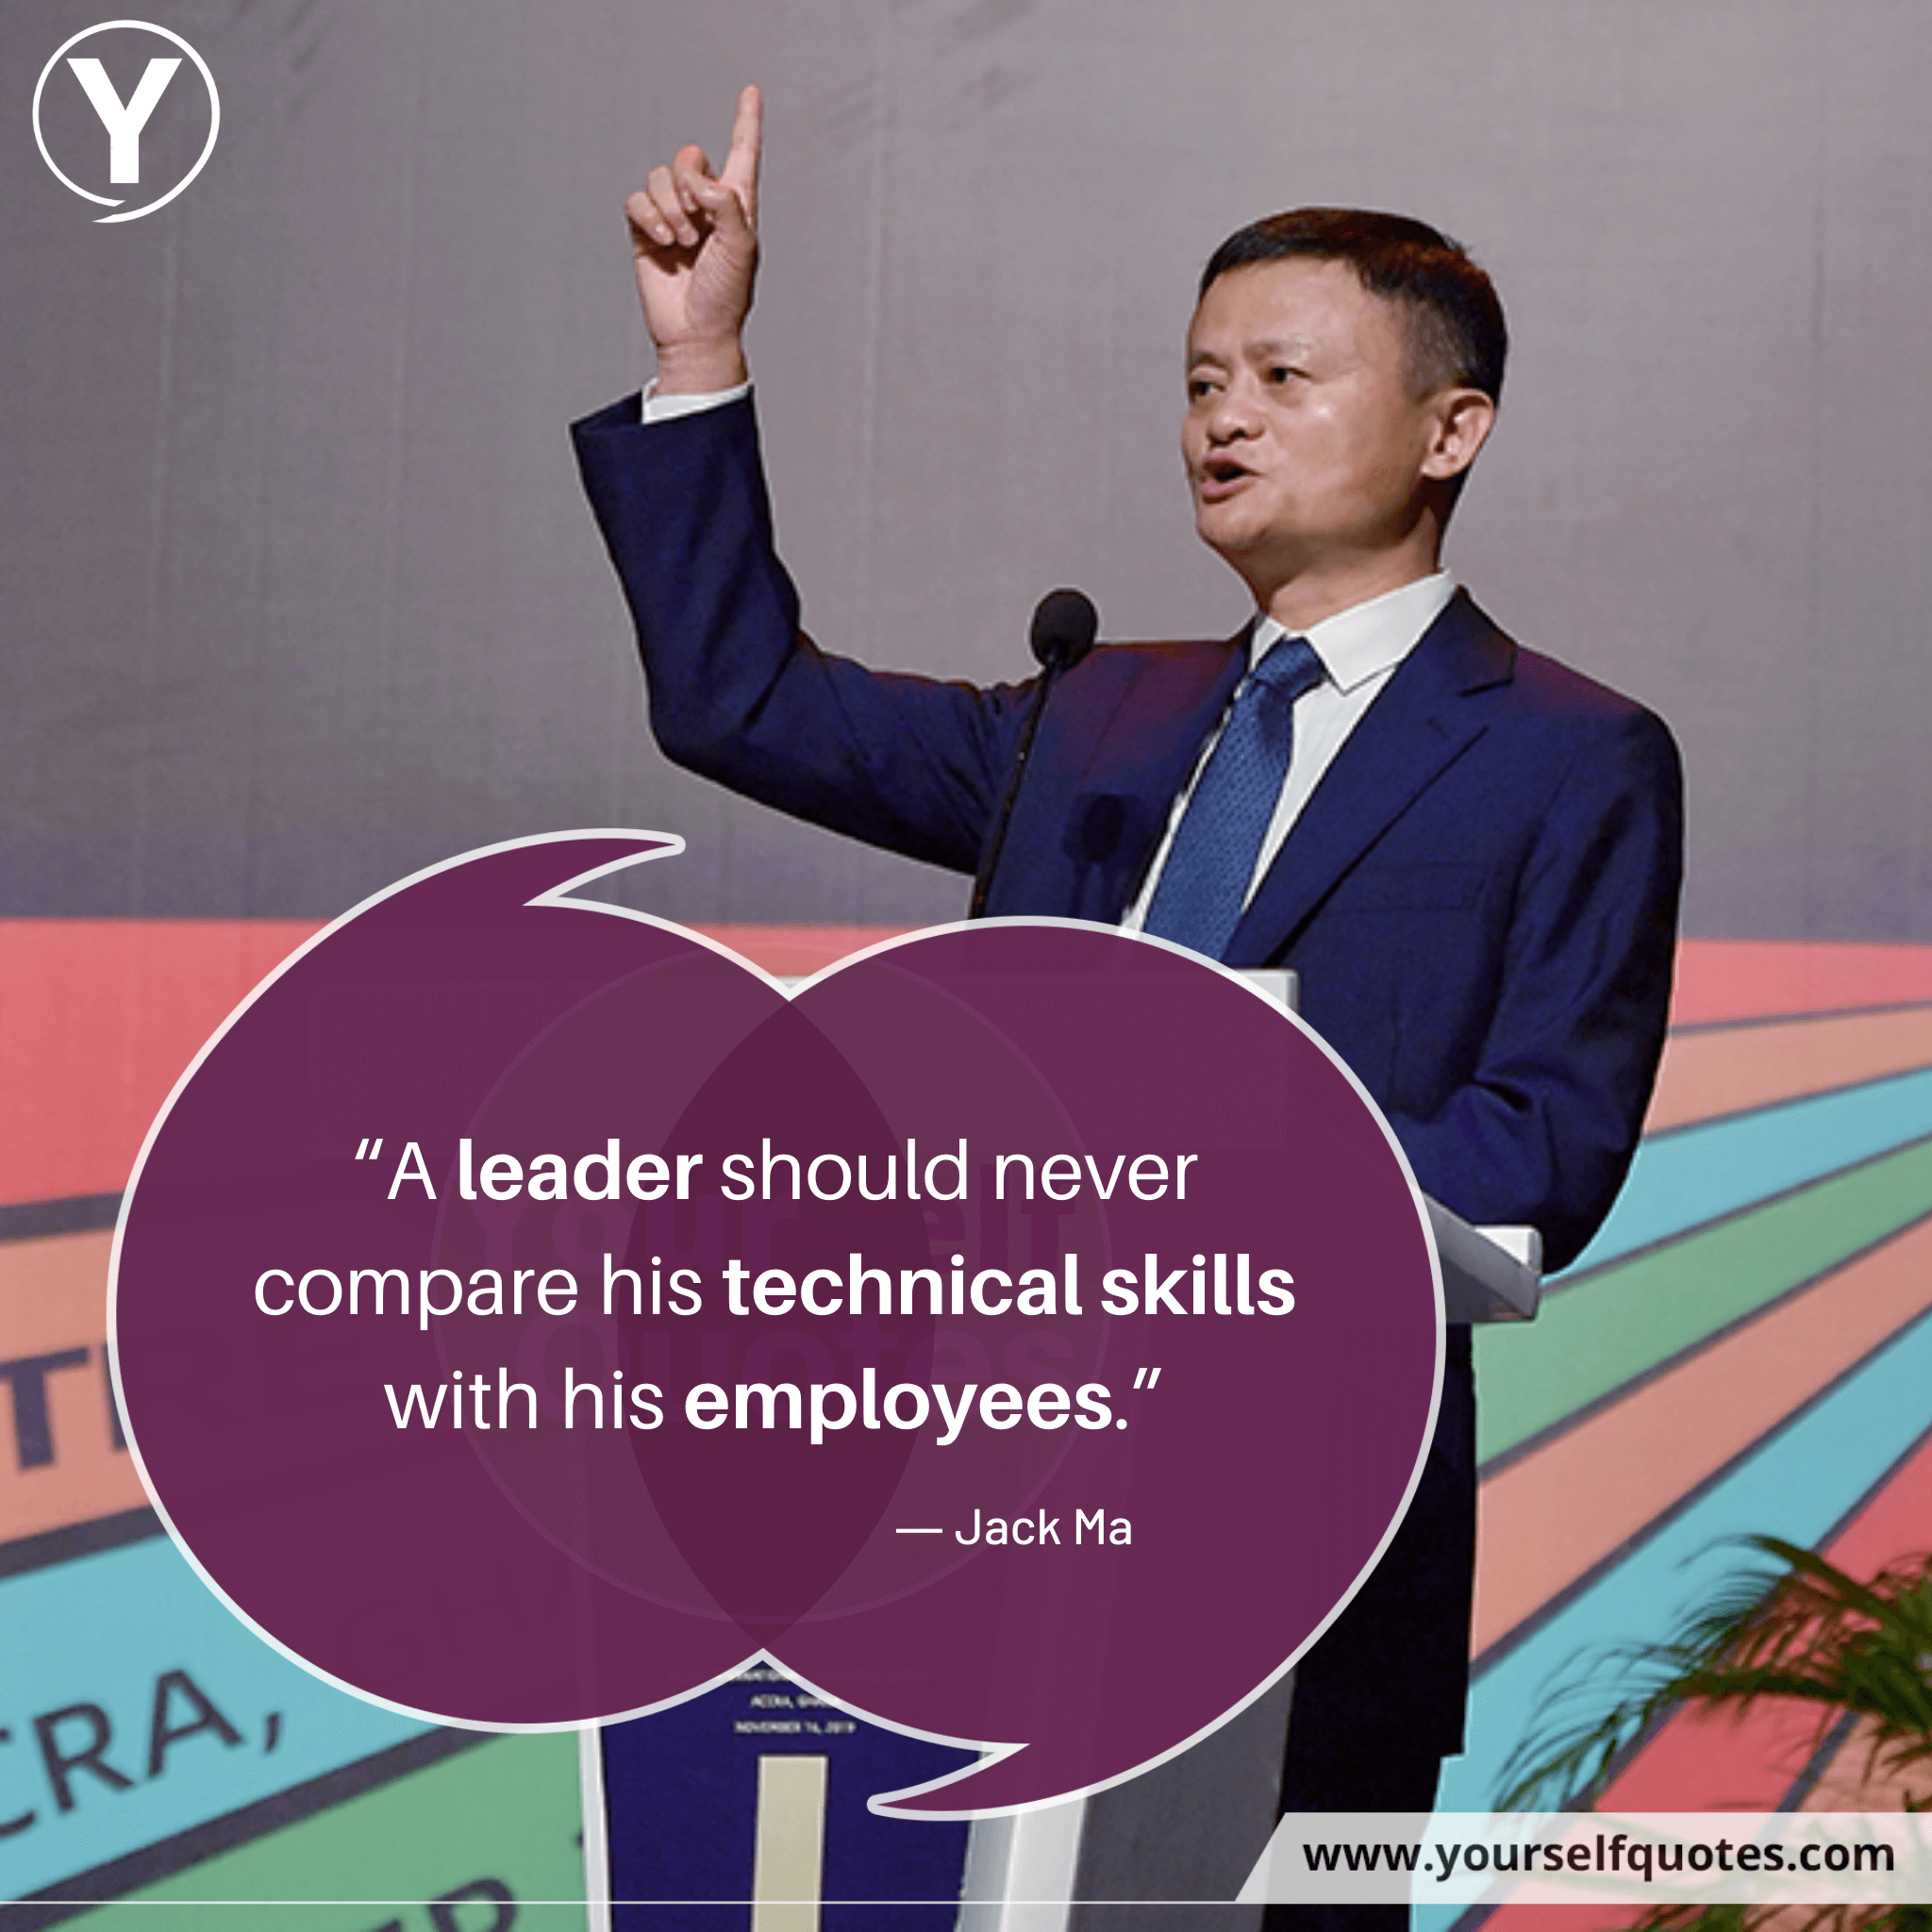 Jack Ma Quotes on Employees